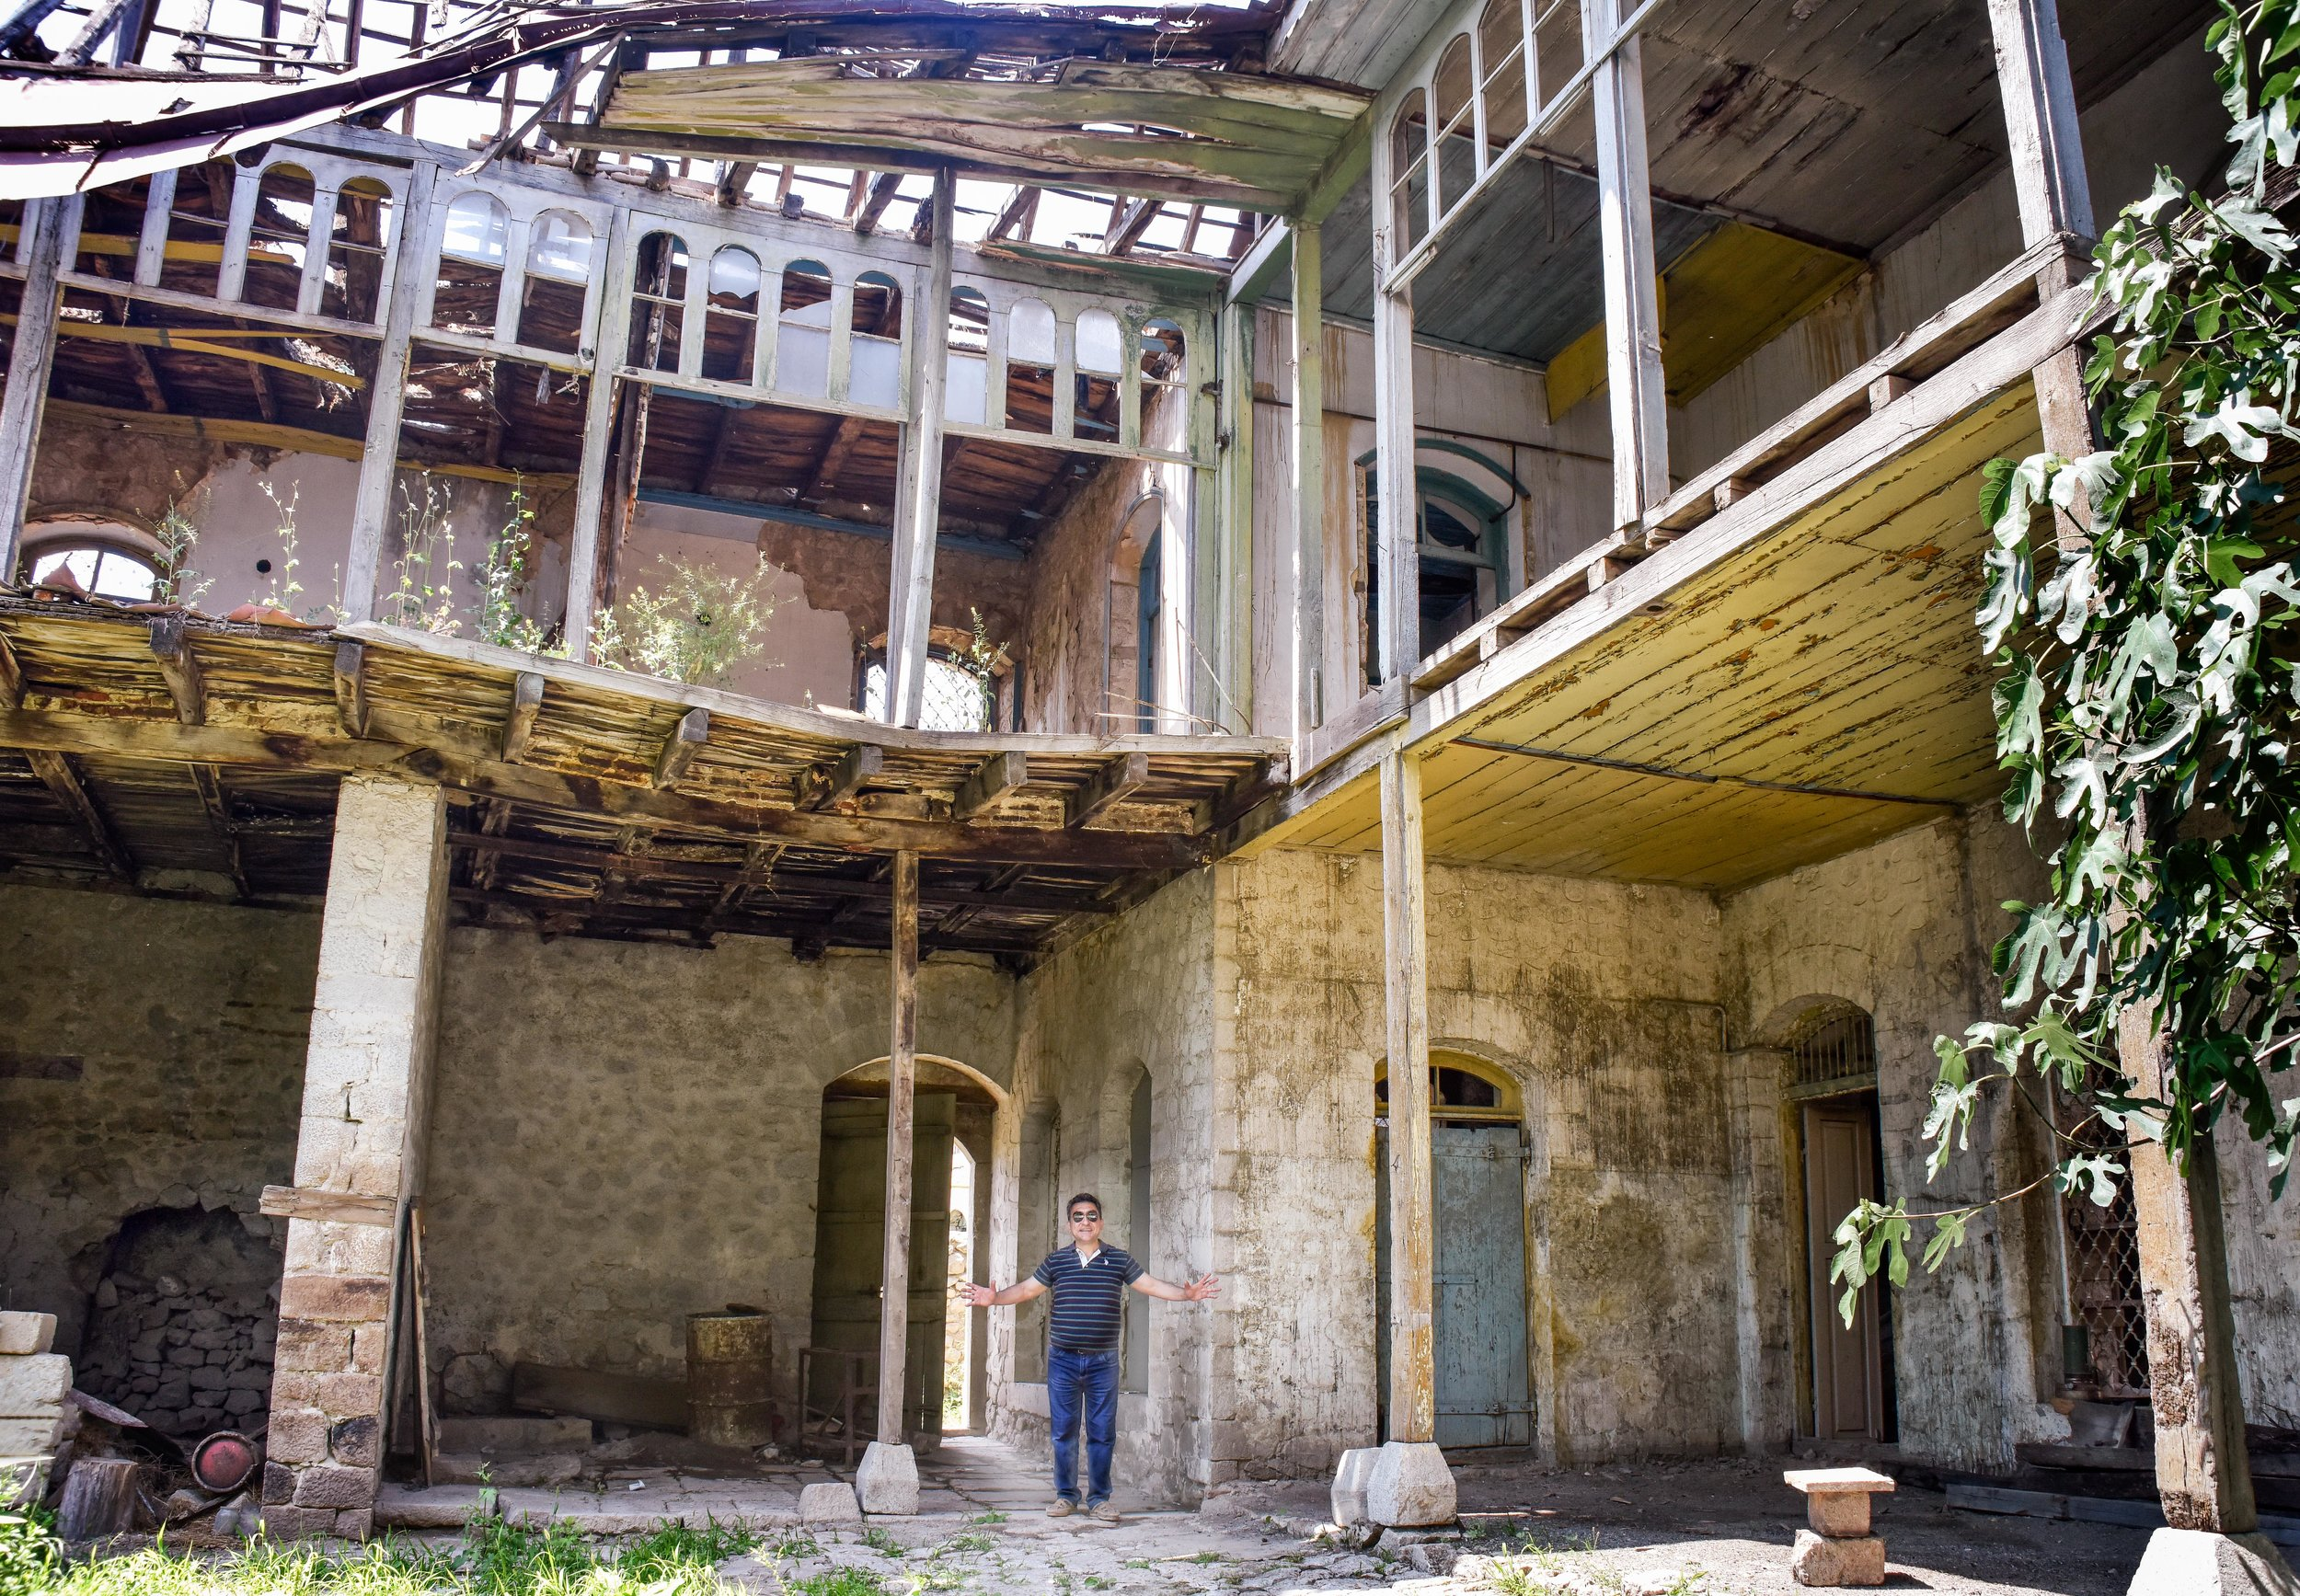 Saro Saryan shows us the traditional home that a local artist is restoring